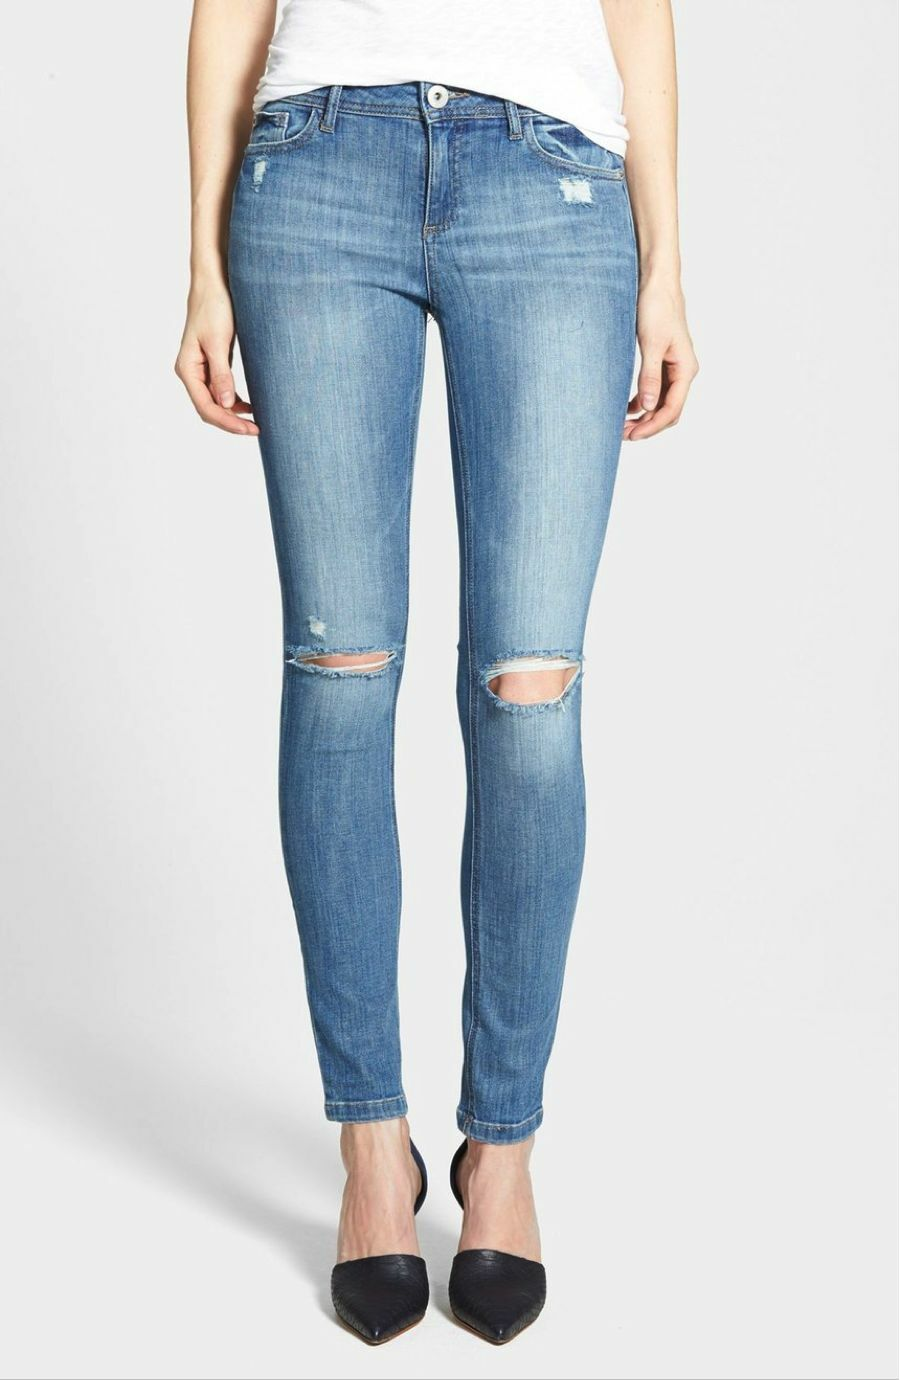 DL1961 Florence Instasculpt Skinny Distressed Jeans in Dixie, sz 29